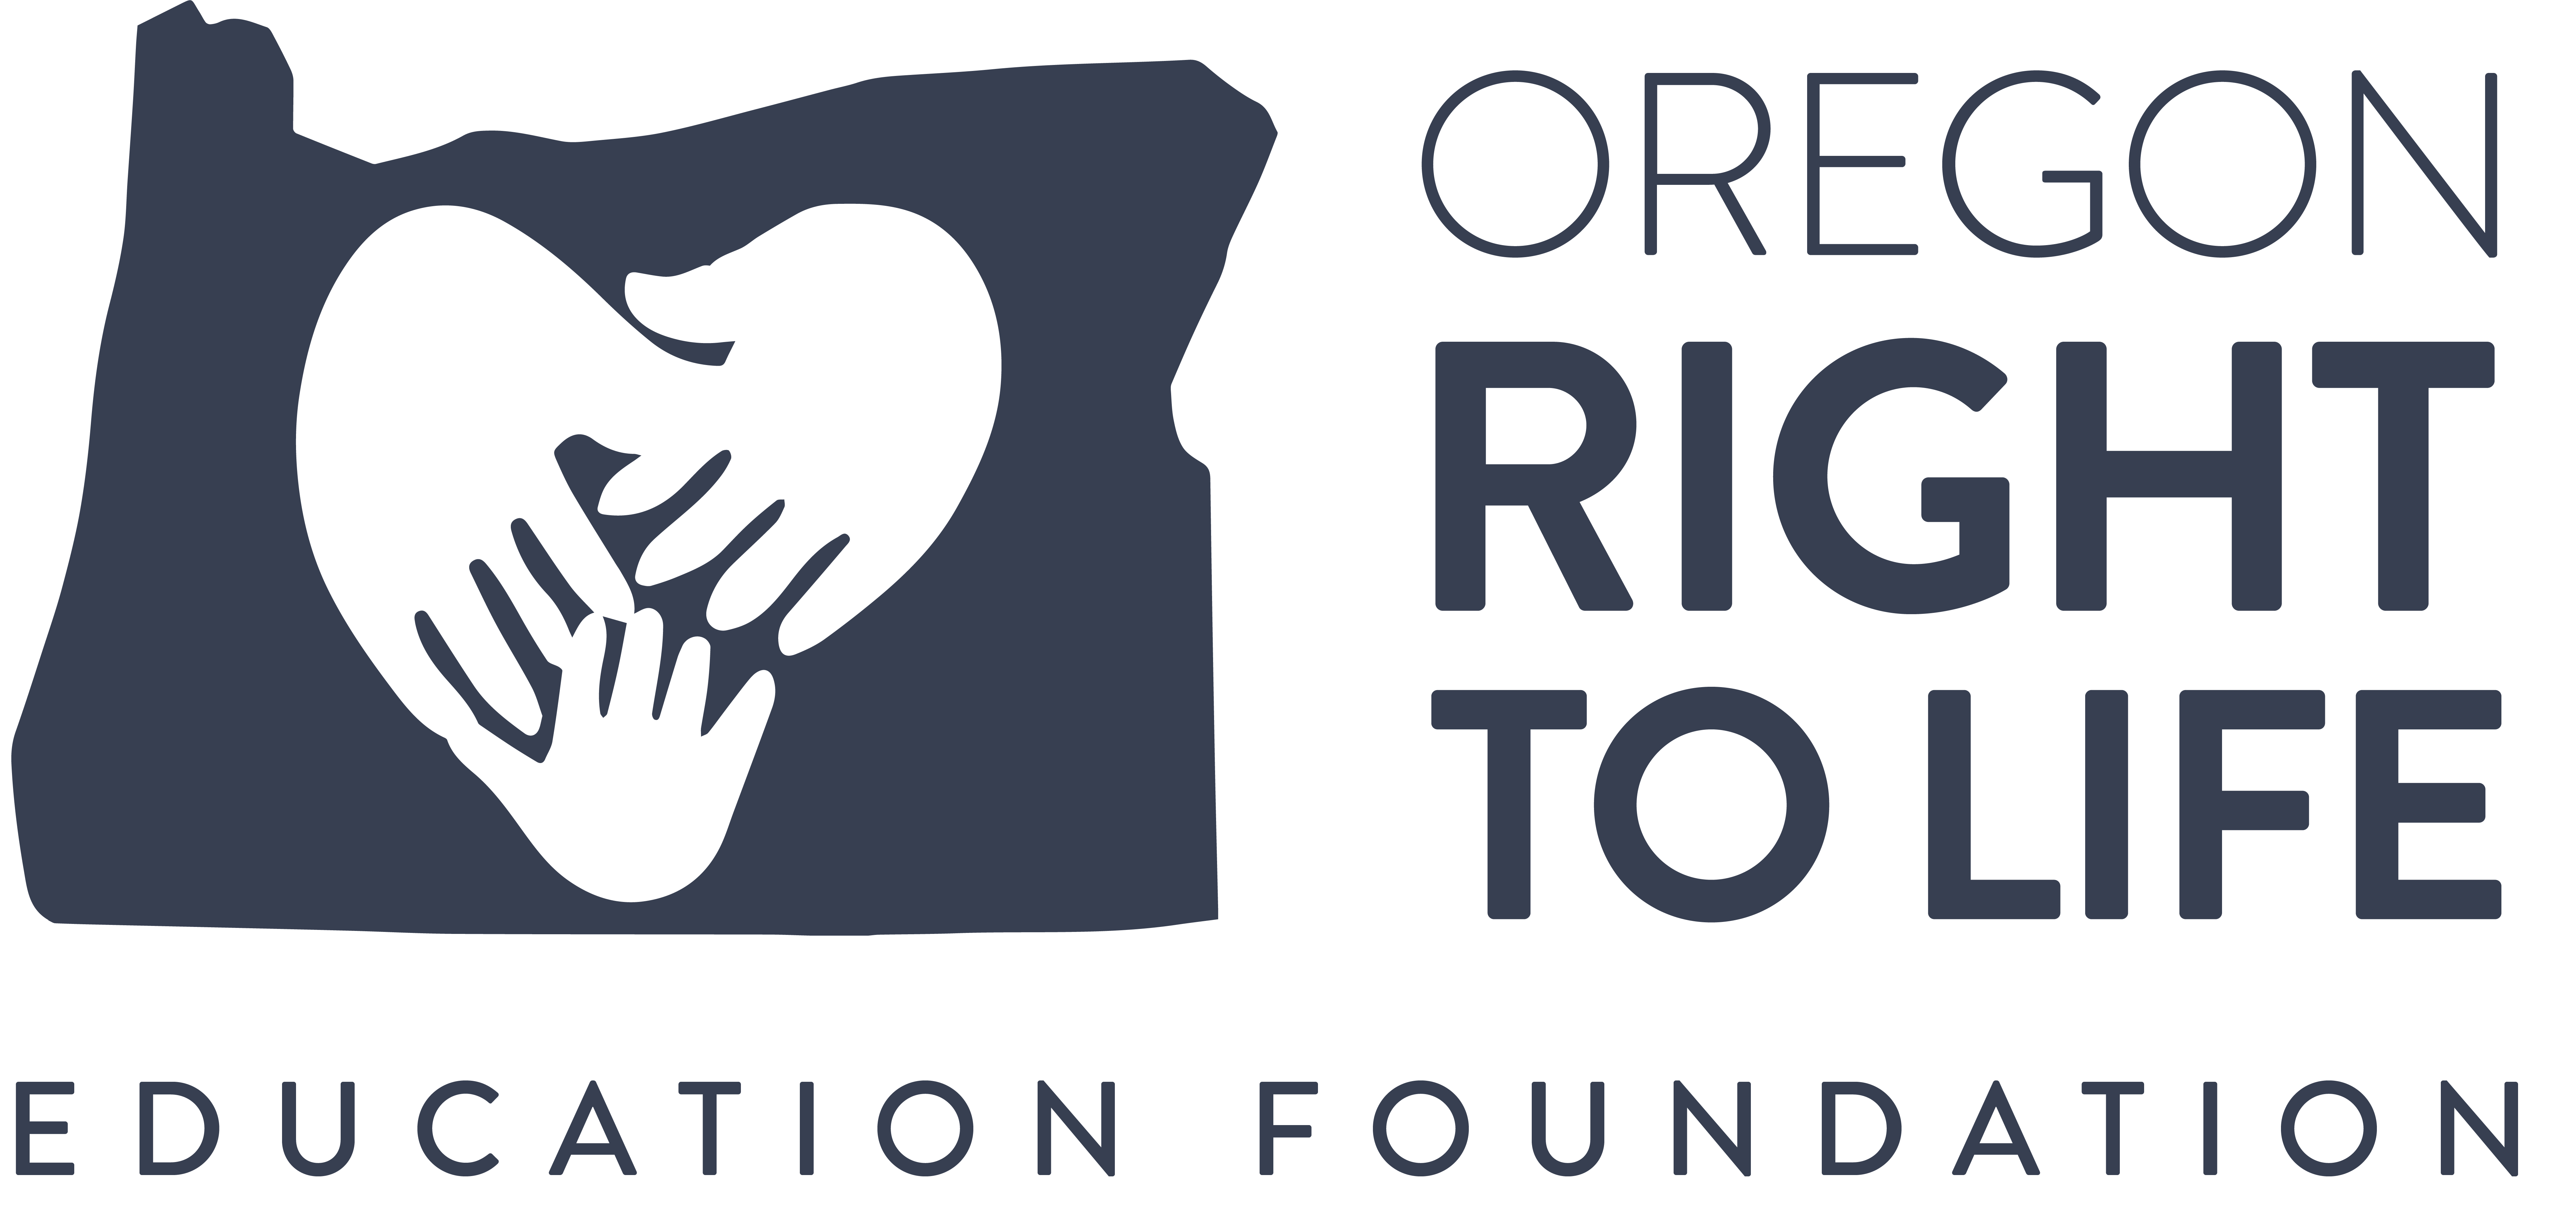 ORTLEF Auction